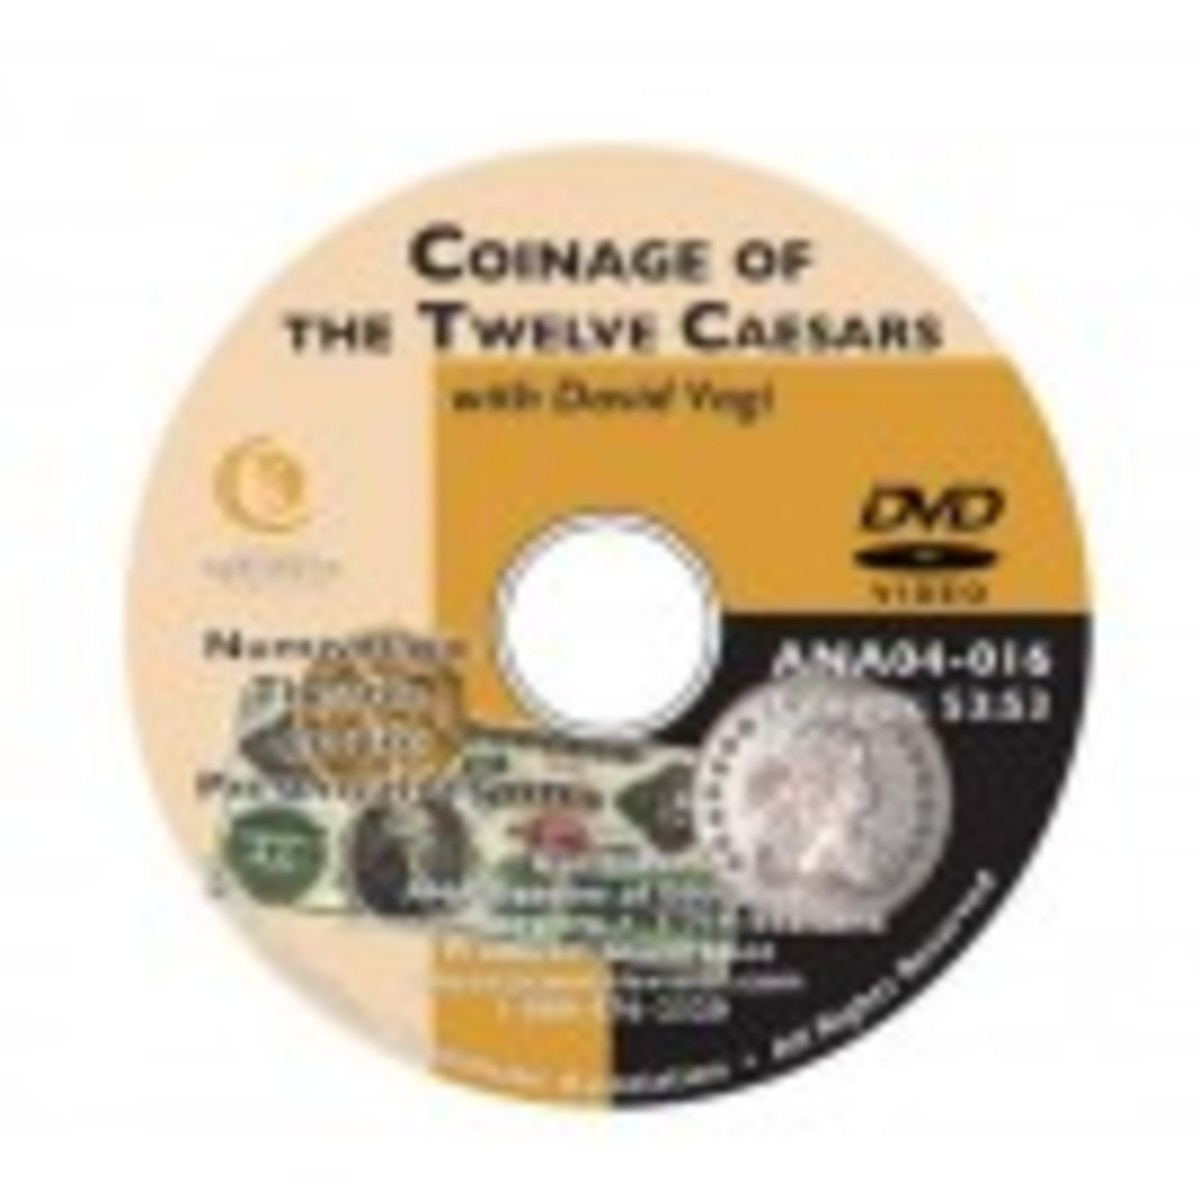 Coinage of the Twelve Caesars